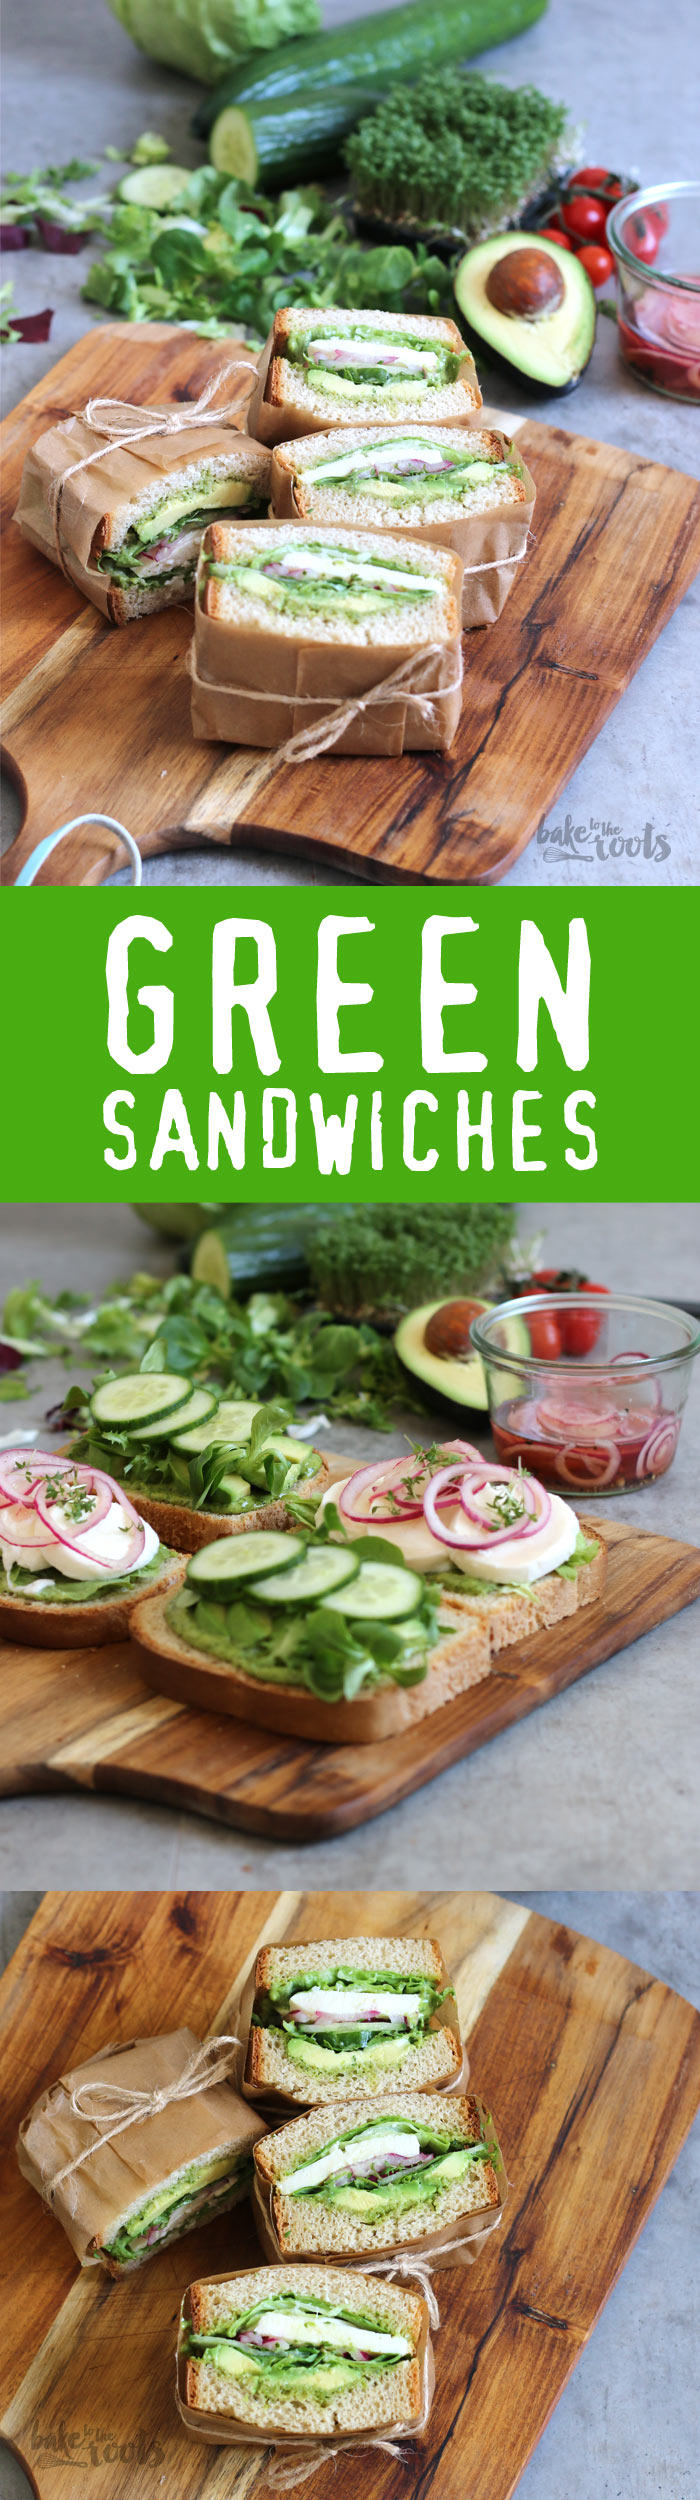 Delicious Green Sandwiches - quick and easy prepared   Bake to the roots